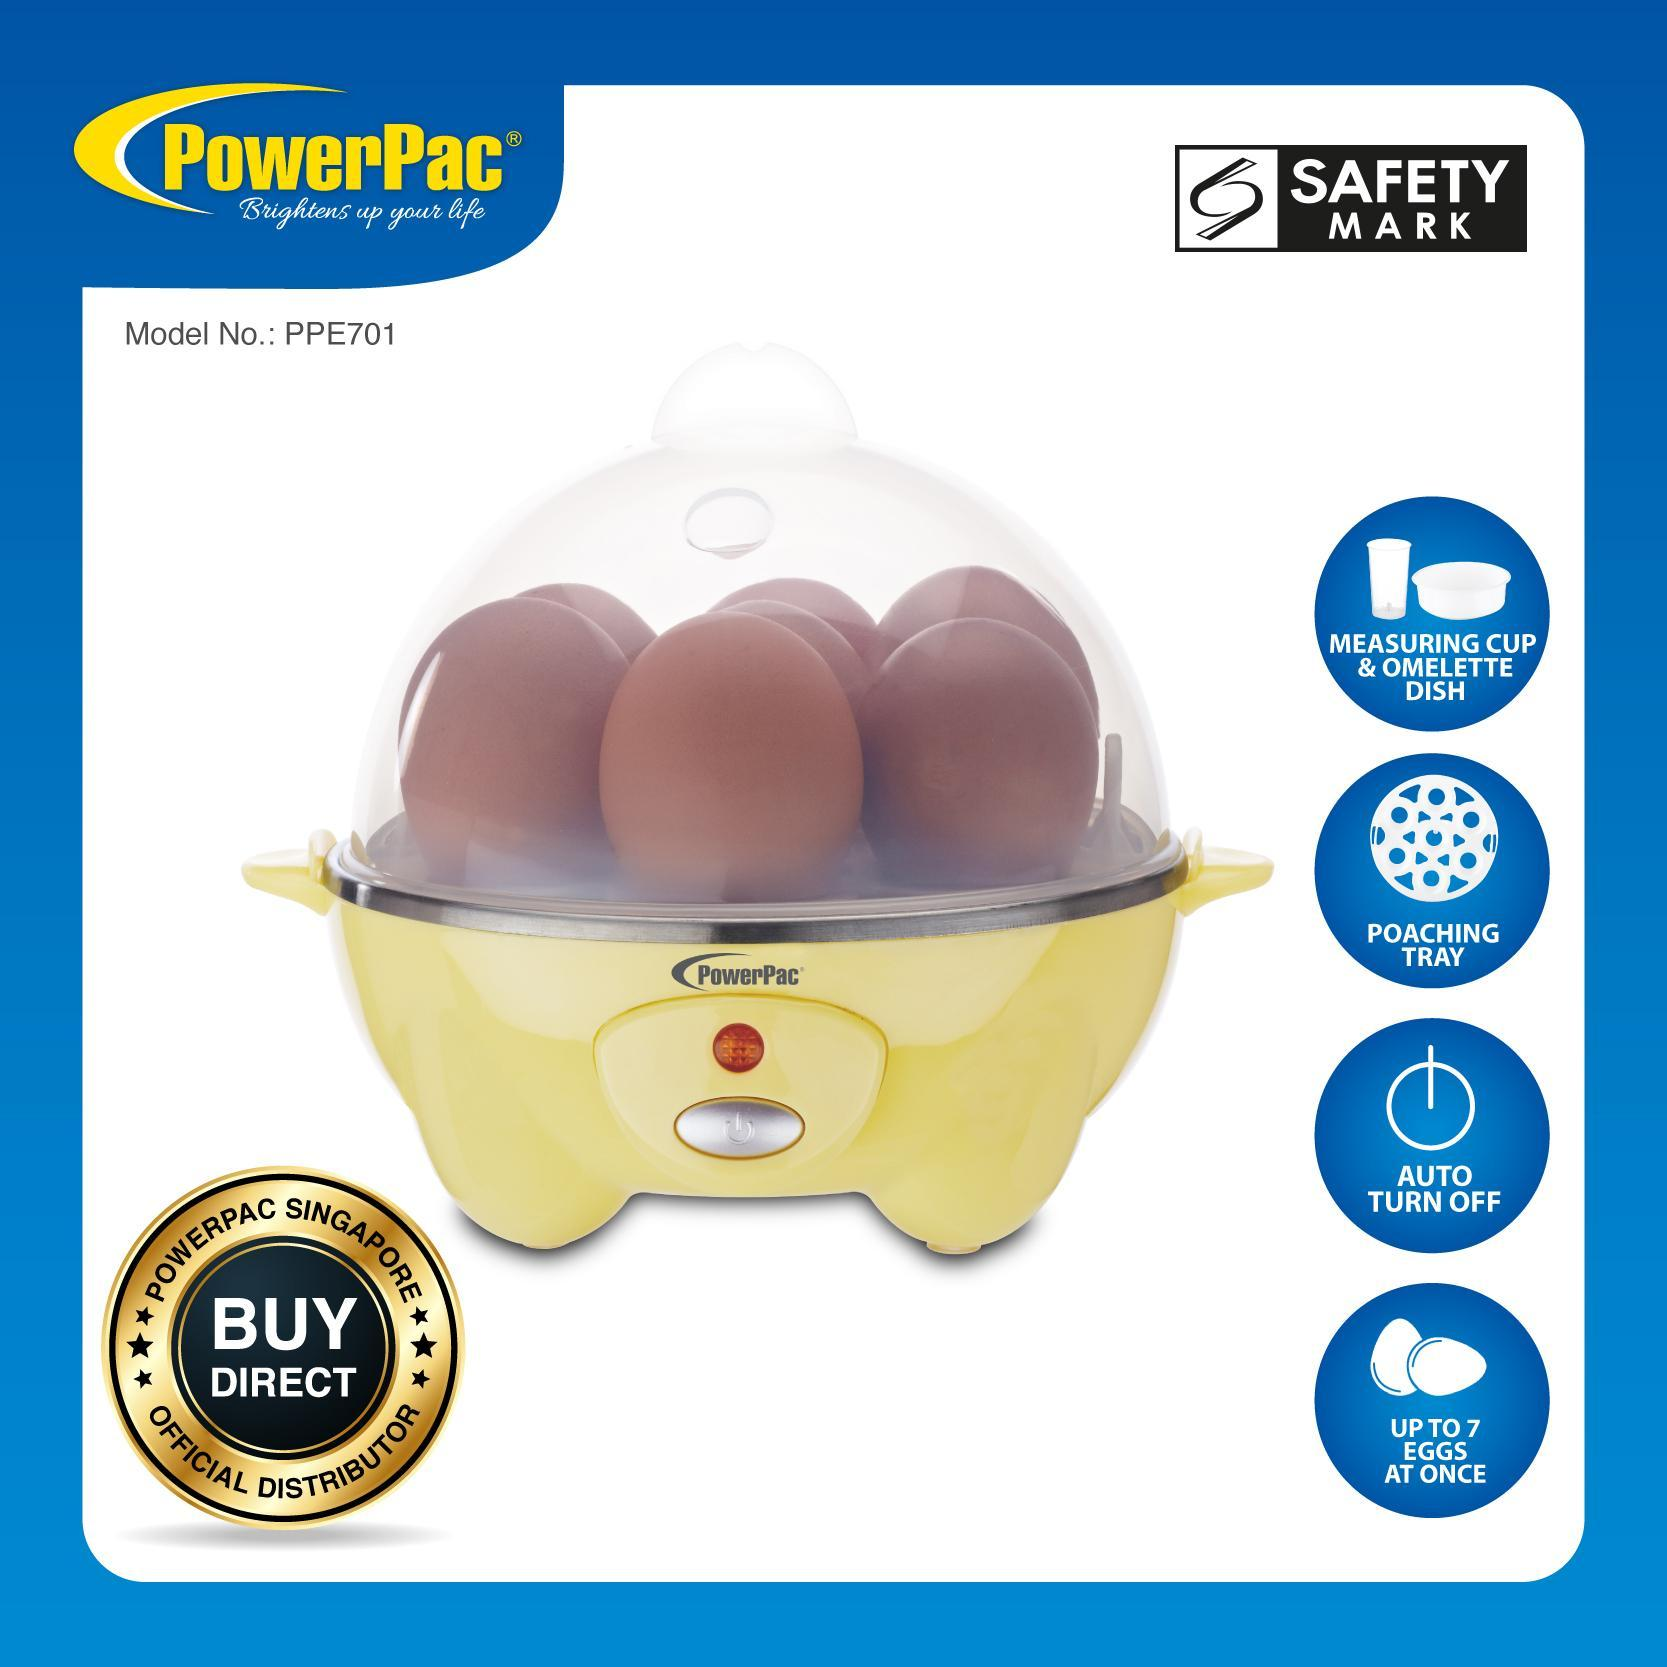 Powerpac Electric Egg Steamer (ppe701) By Powerpac.